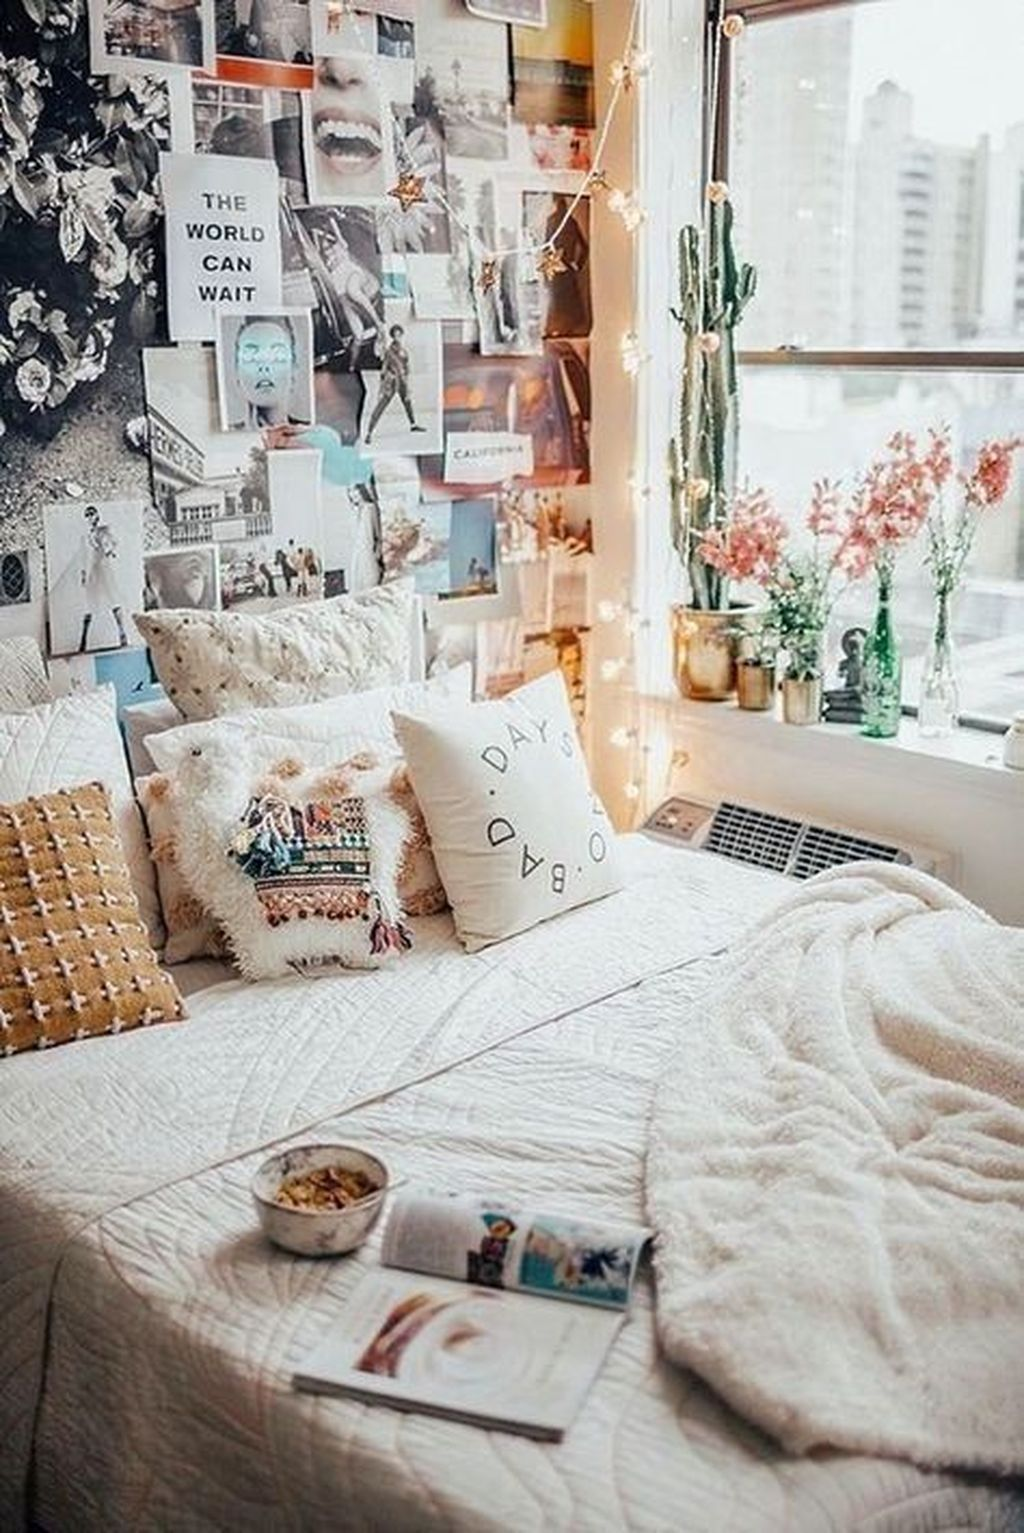 44 Creative Small Bedroom Decor Ideas Easy To Apply Dorm Room